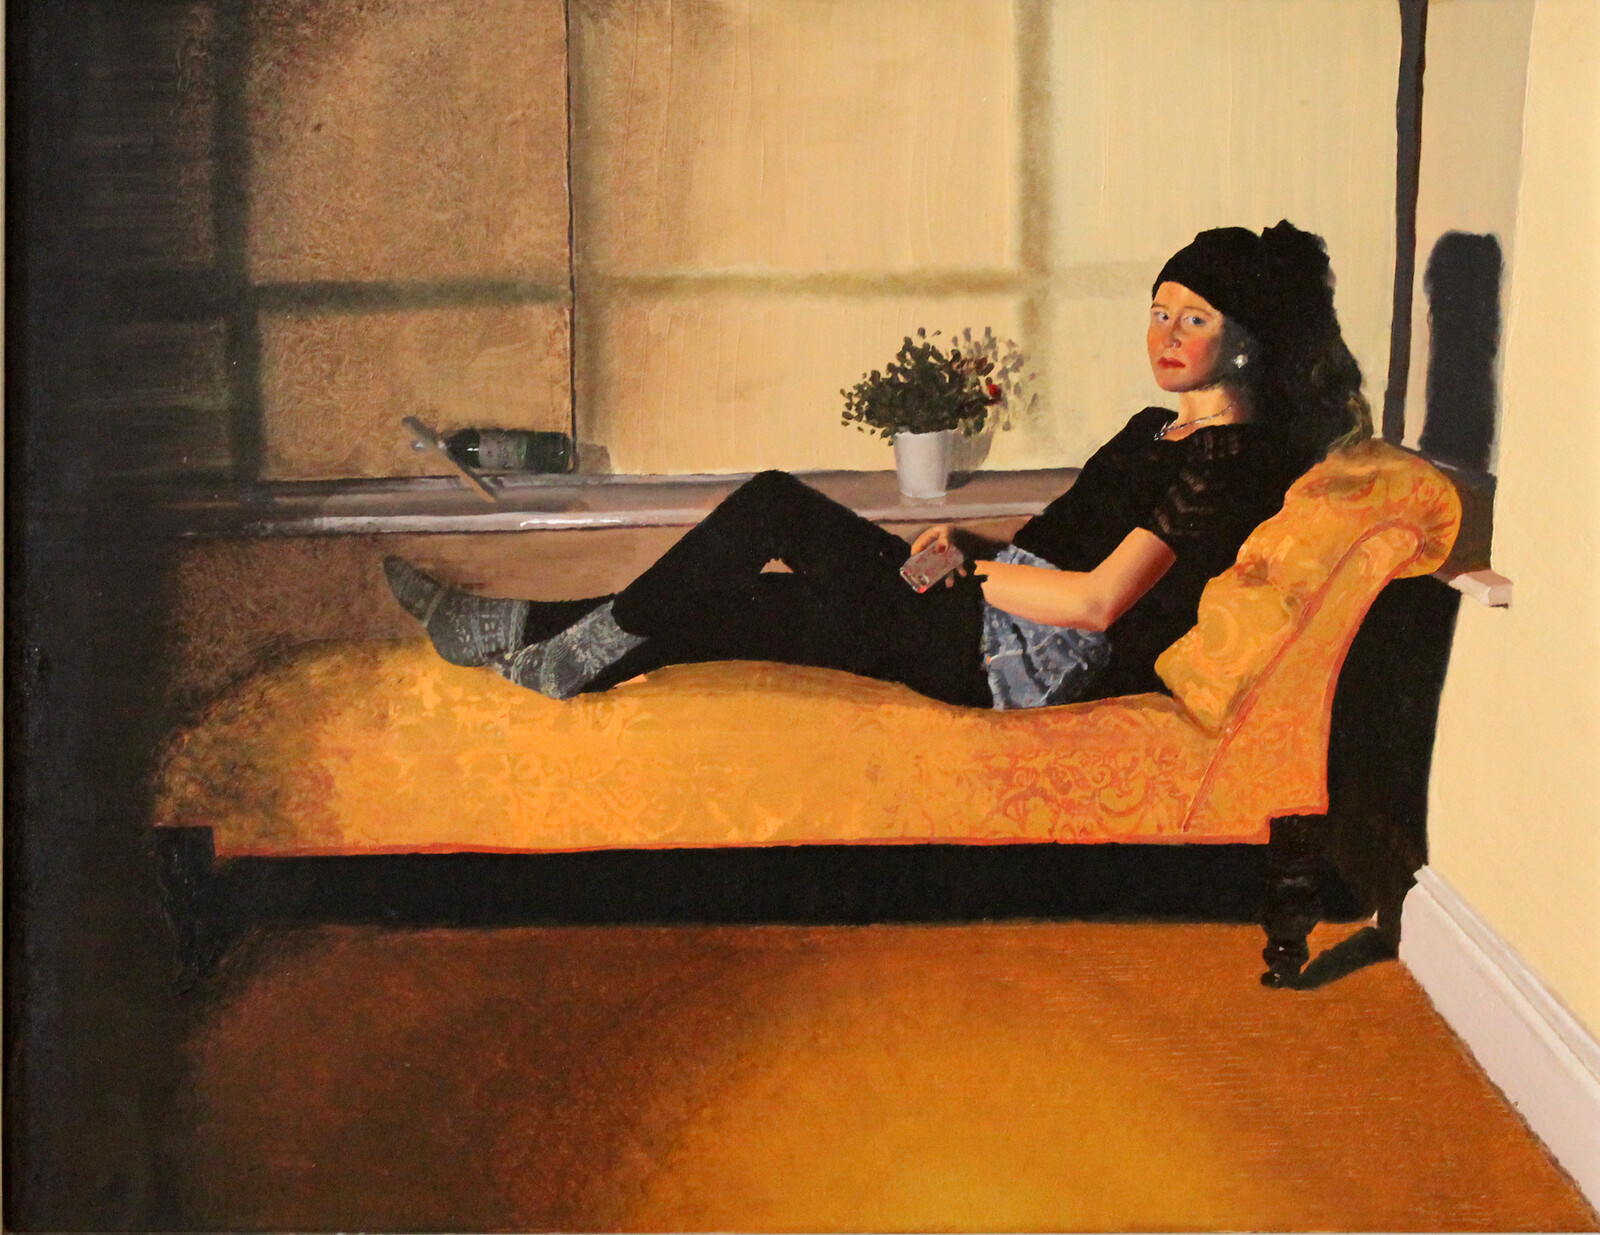 Girl On Chaise Lounge